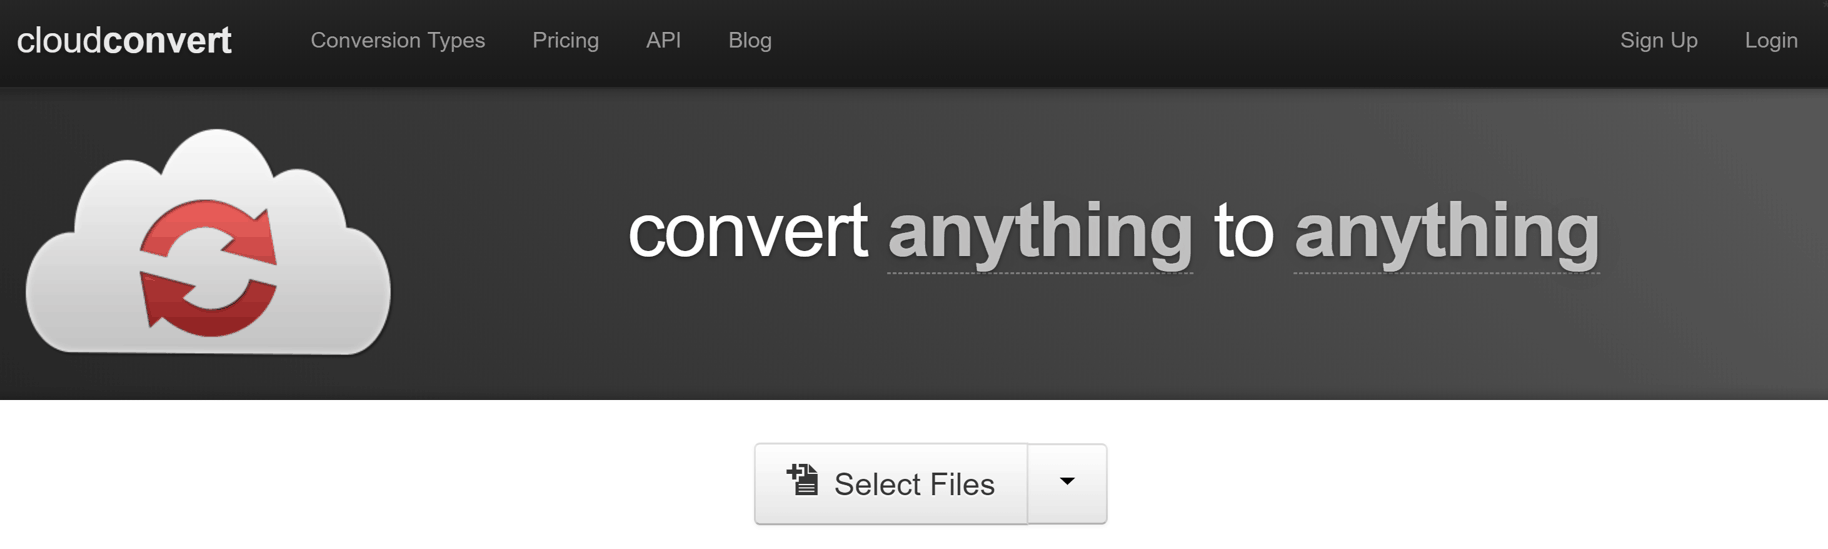 A visual of the cloud convert website